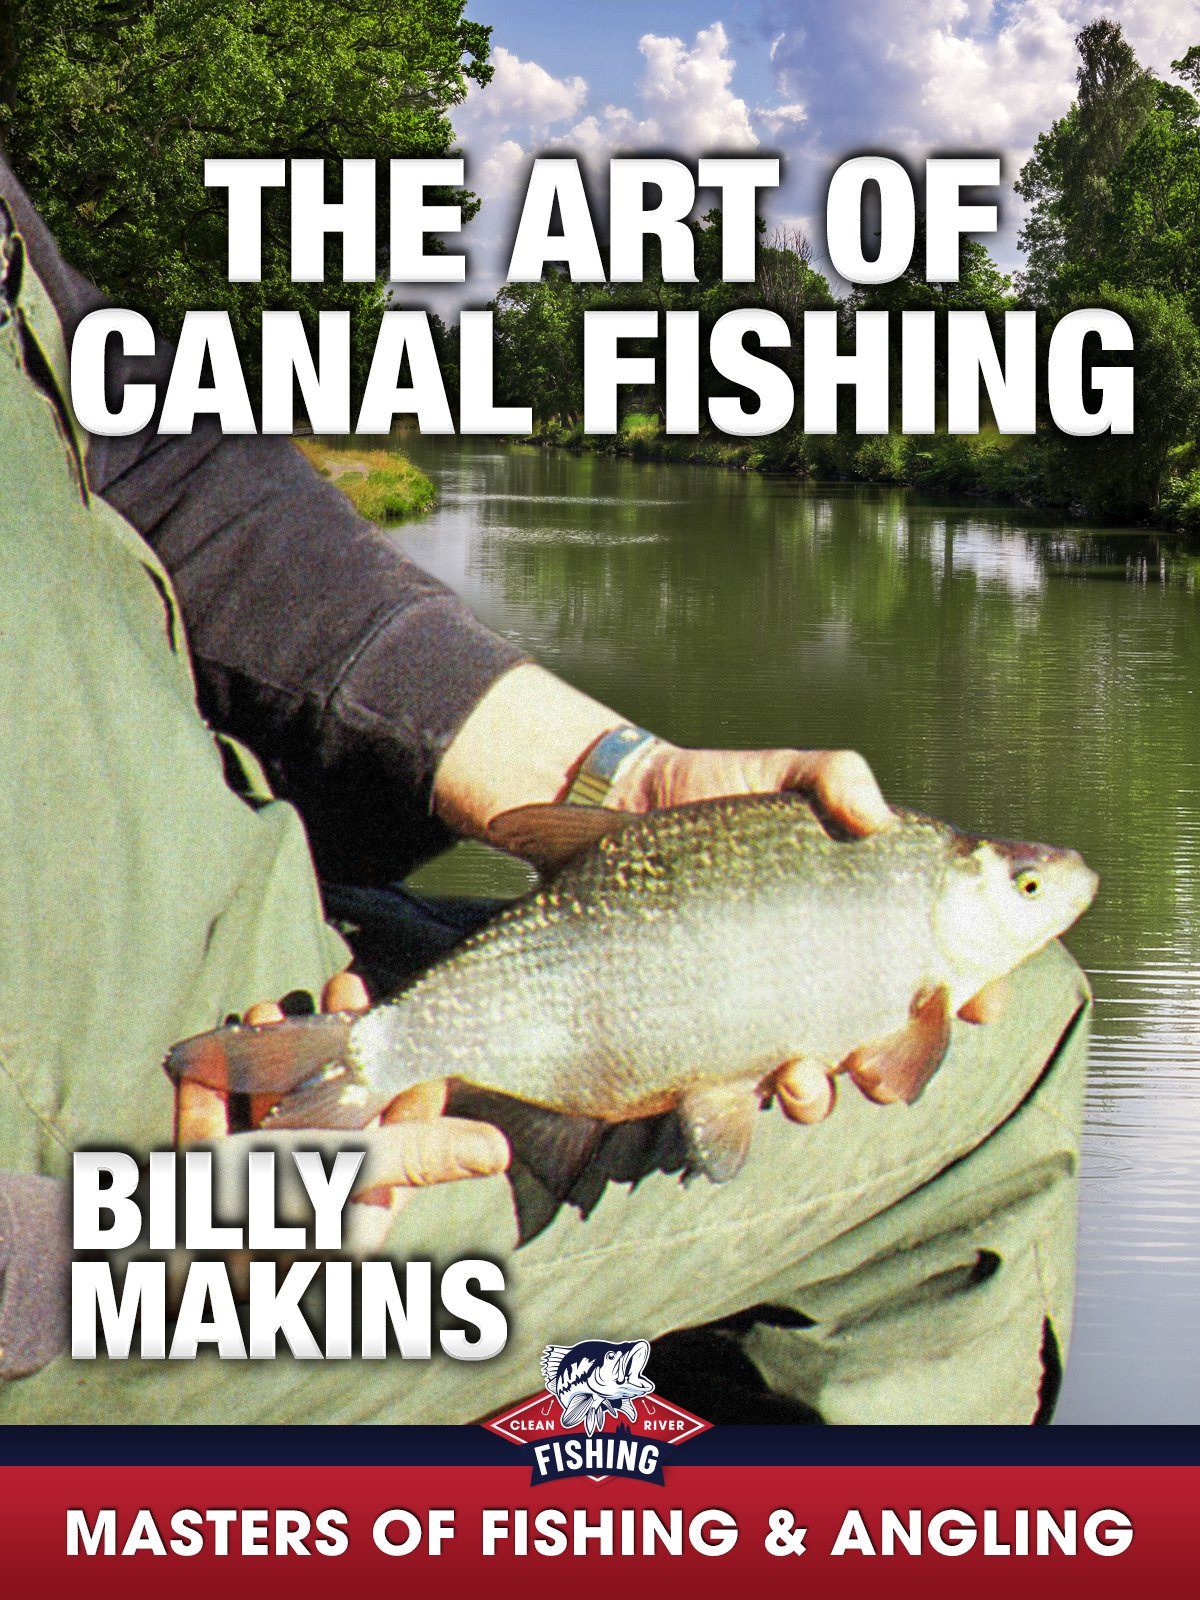 The Art of Canal Fishing